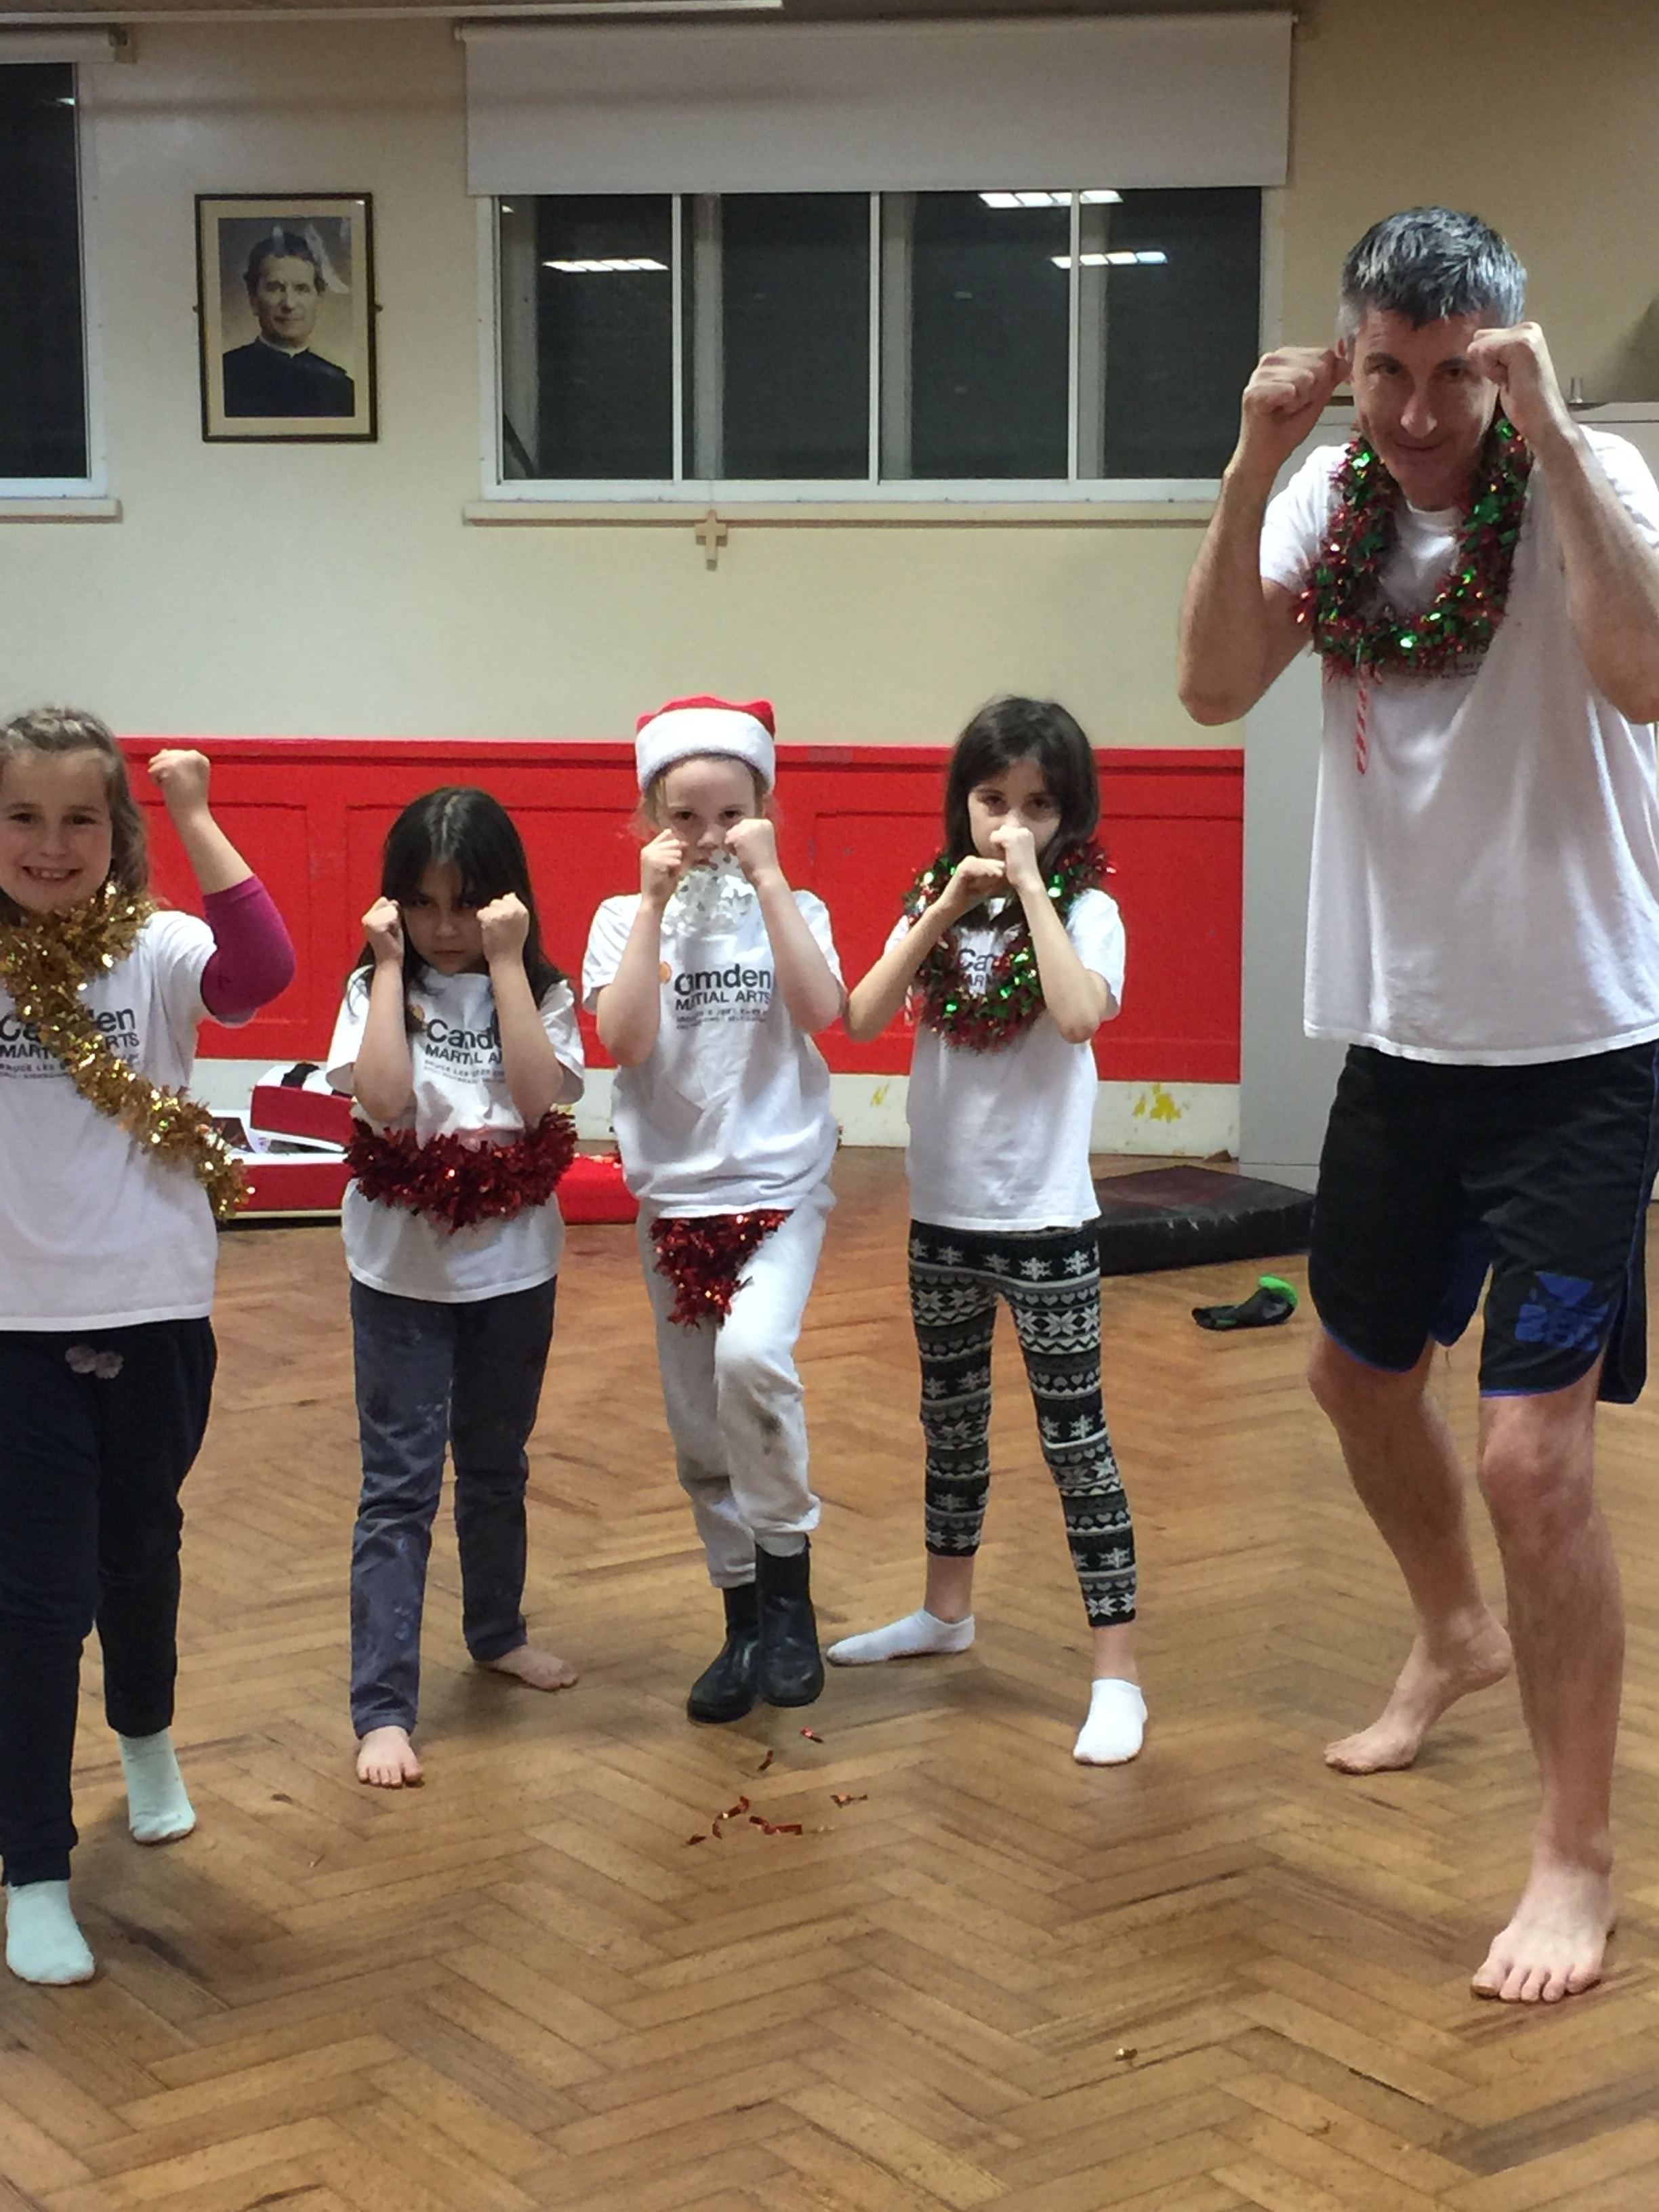 Last lesson before Christmas - Jab, cross, hook, Christmas tree! Front kick, mince pies!